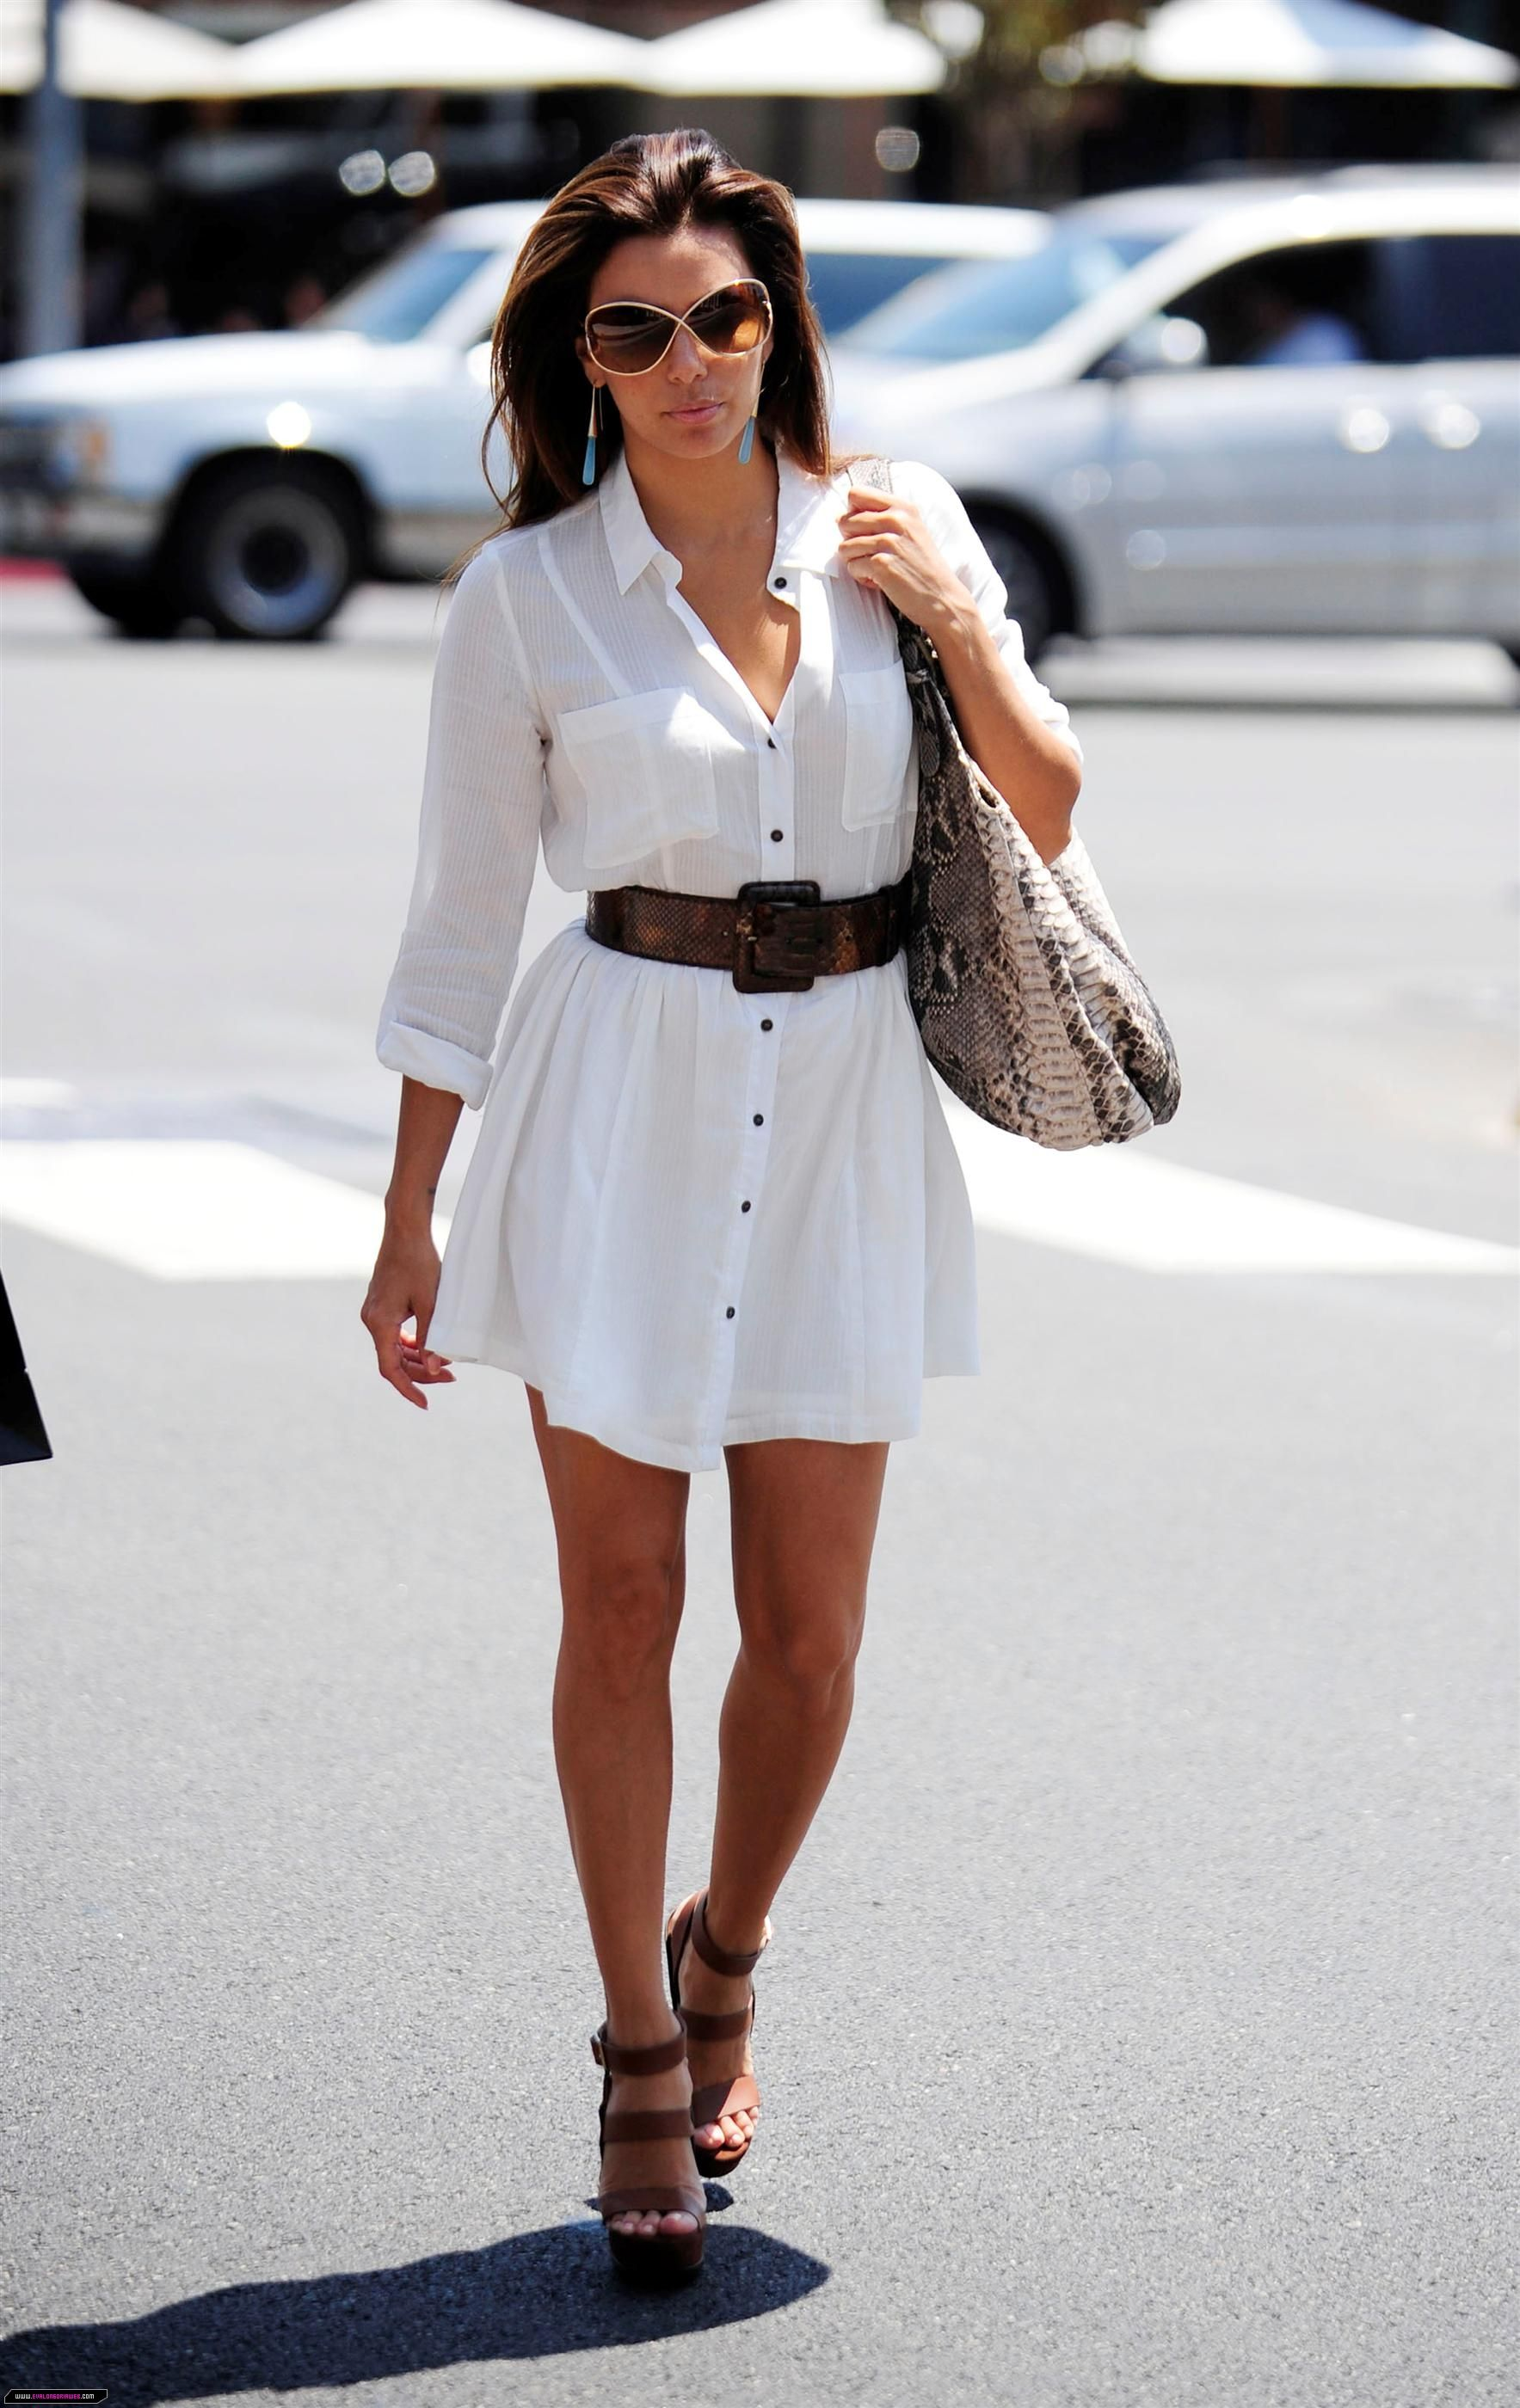 easy summer look: white shirt dress with a belt | Fashion